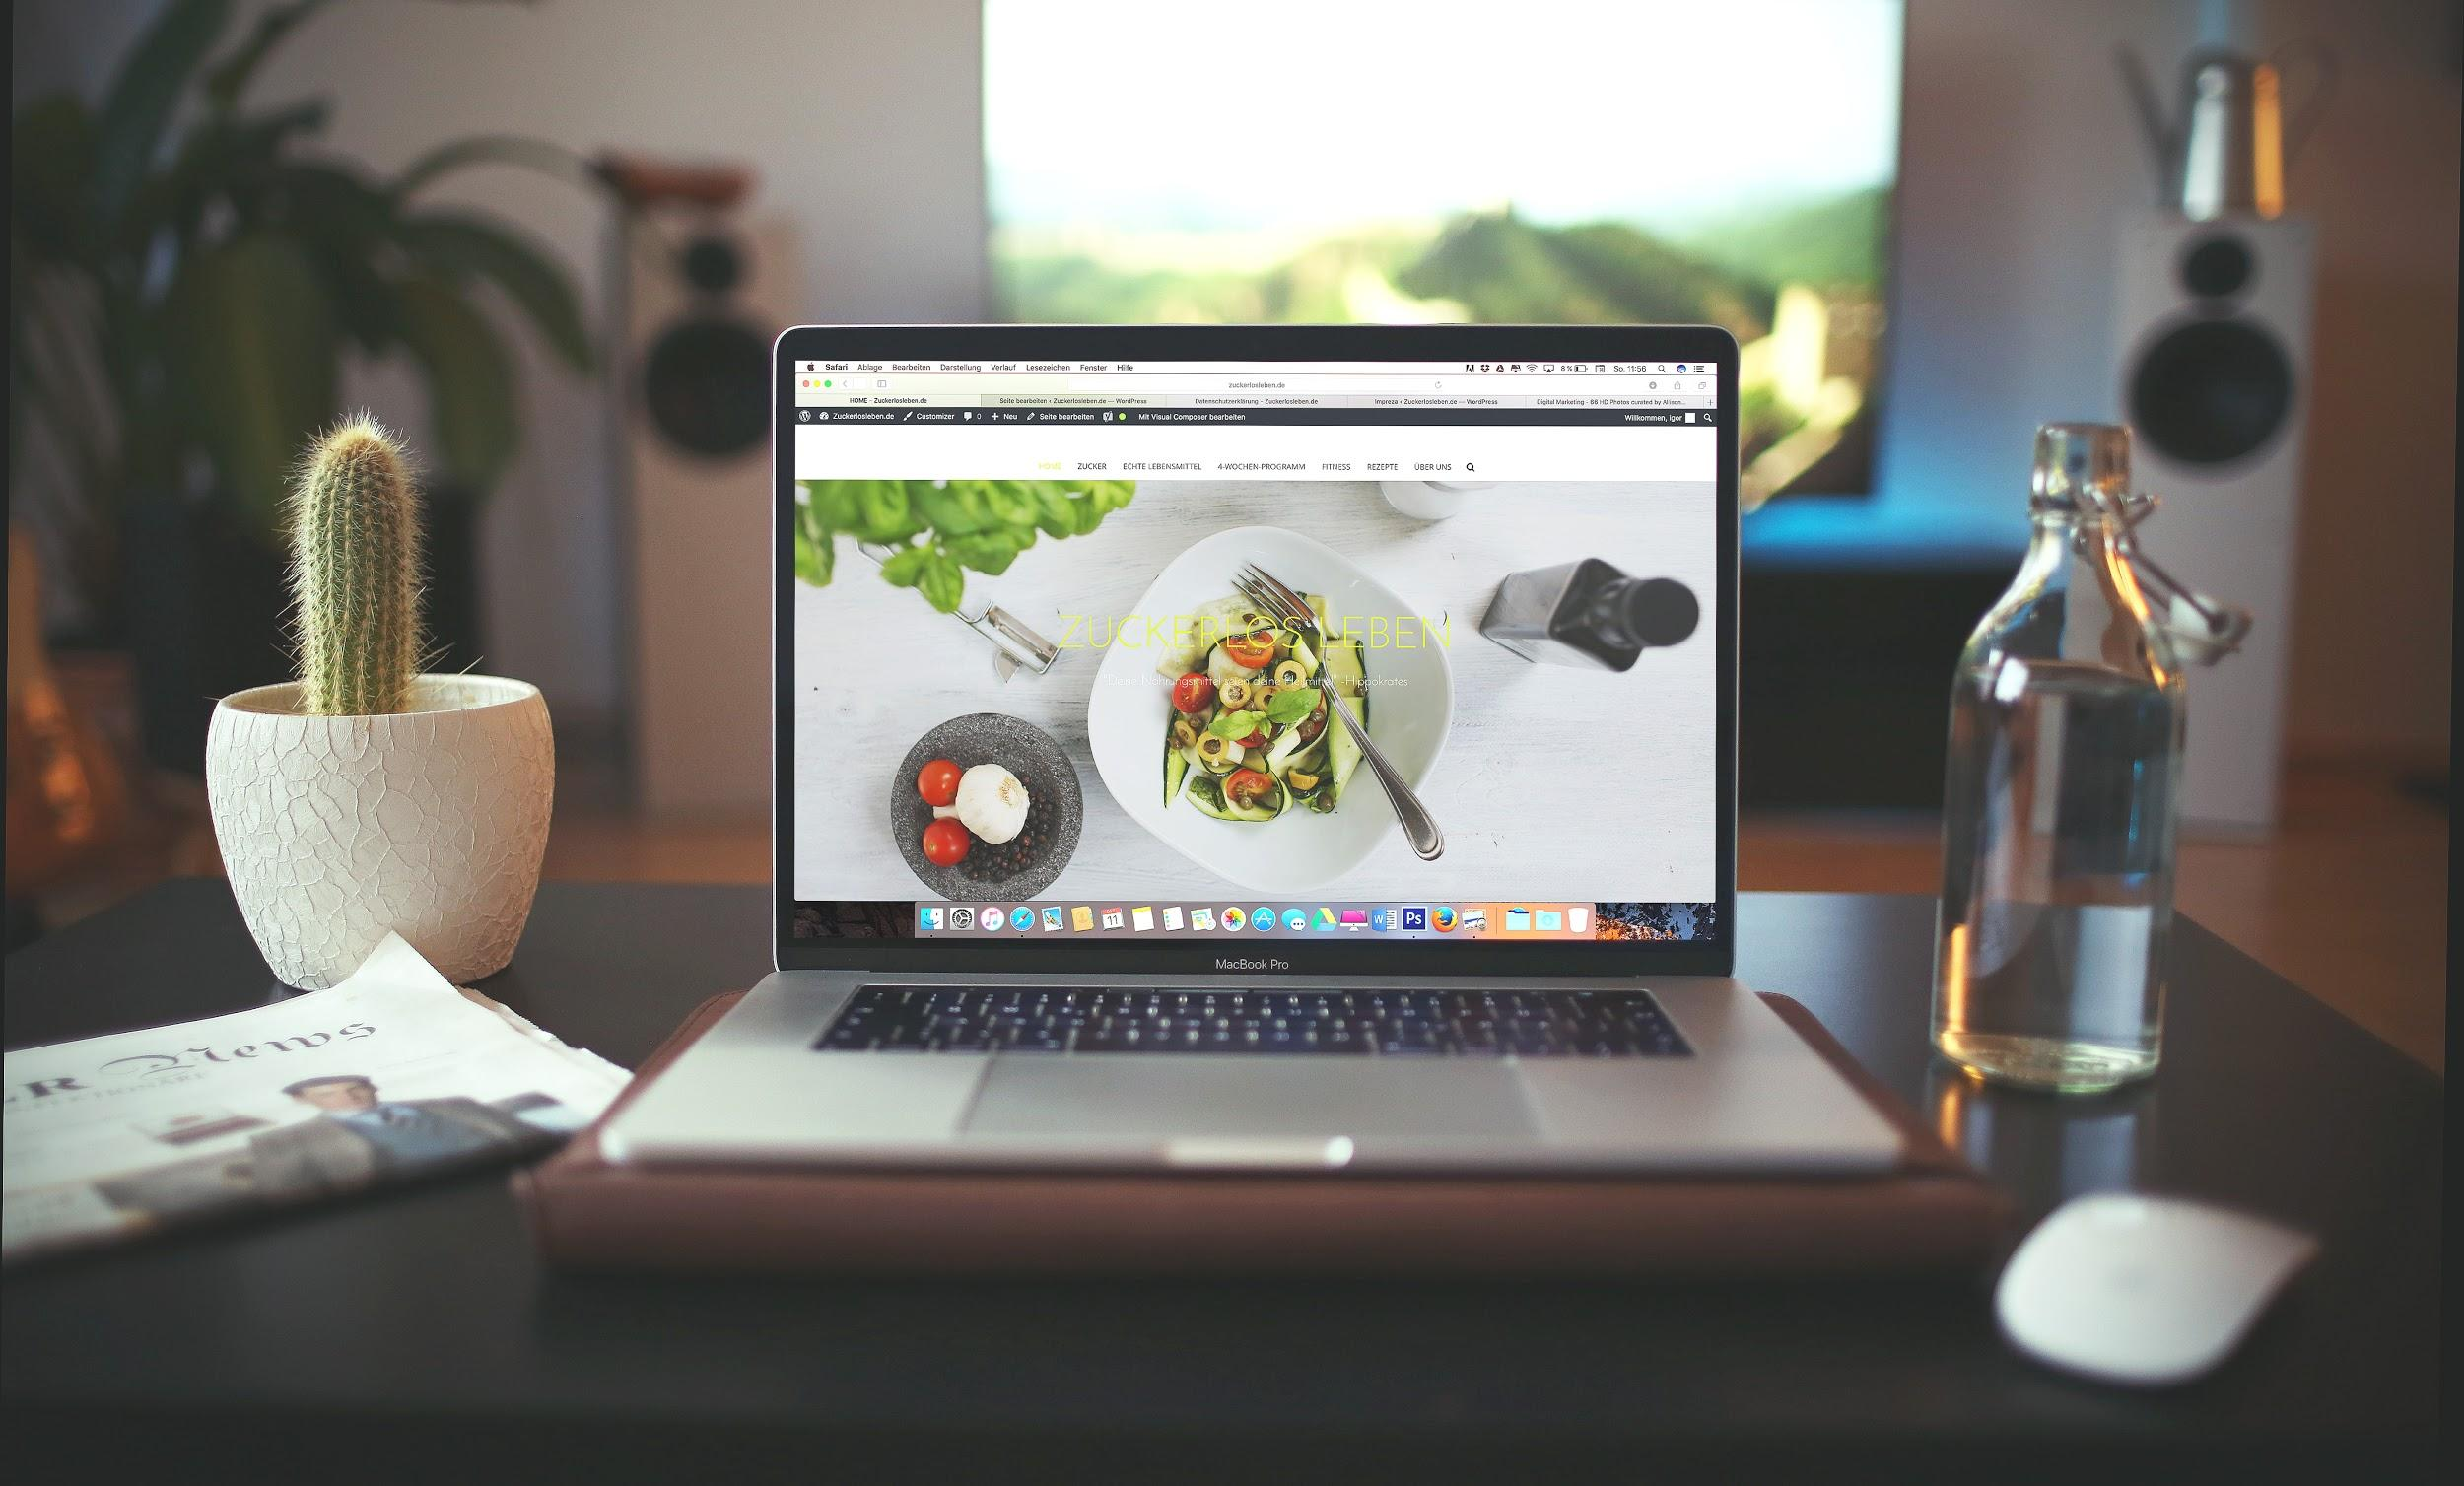 A laptop sits open on a desk showing a website with a bowl of vegetables. The desk also contains a plant, a newspaper, and a glass of water.